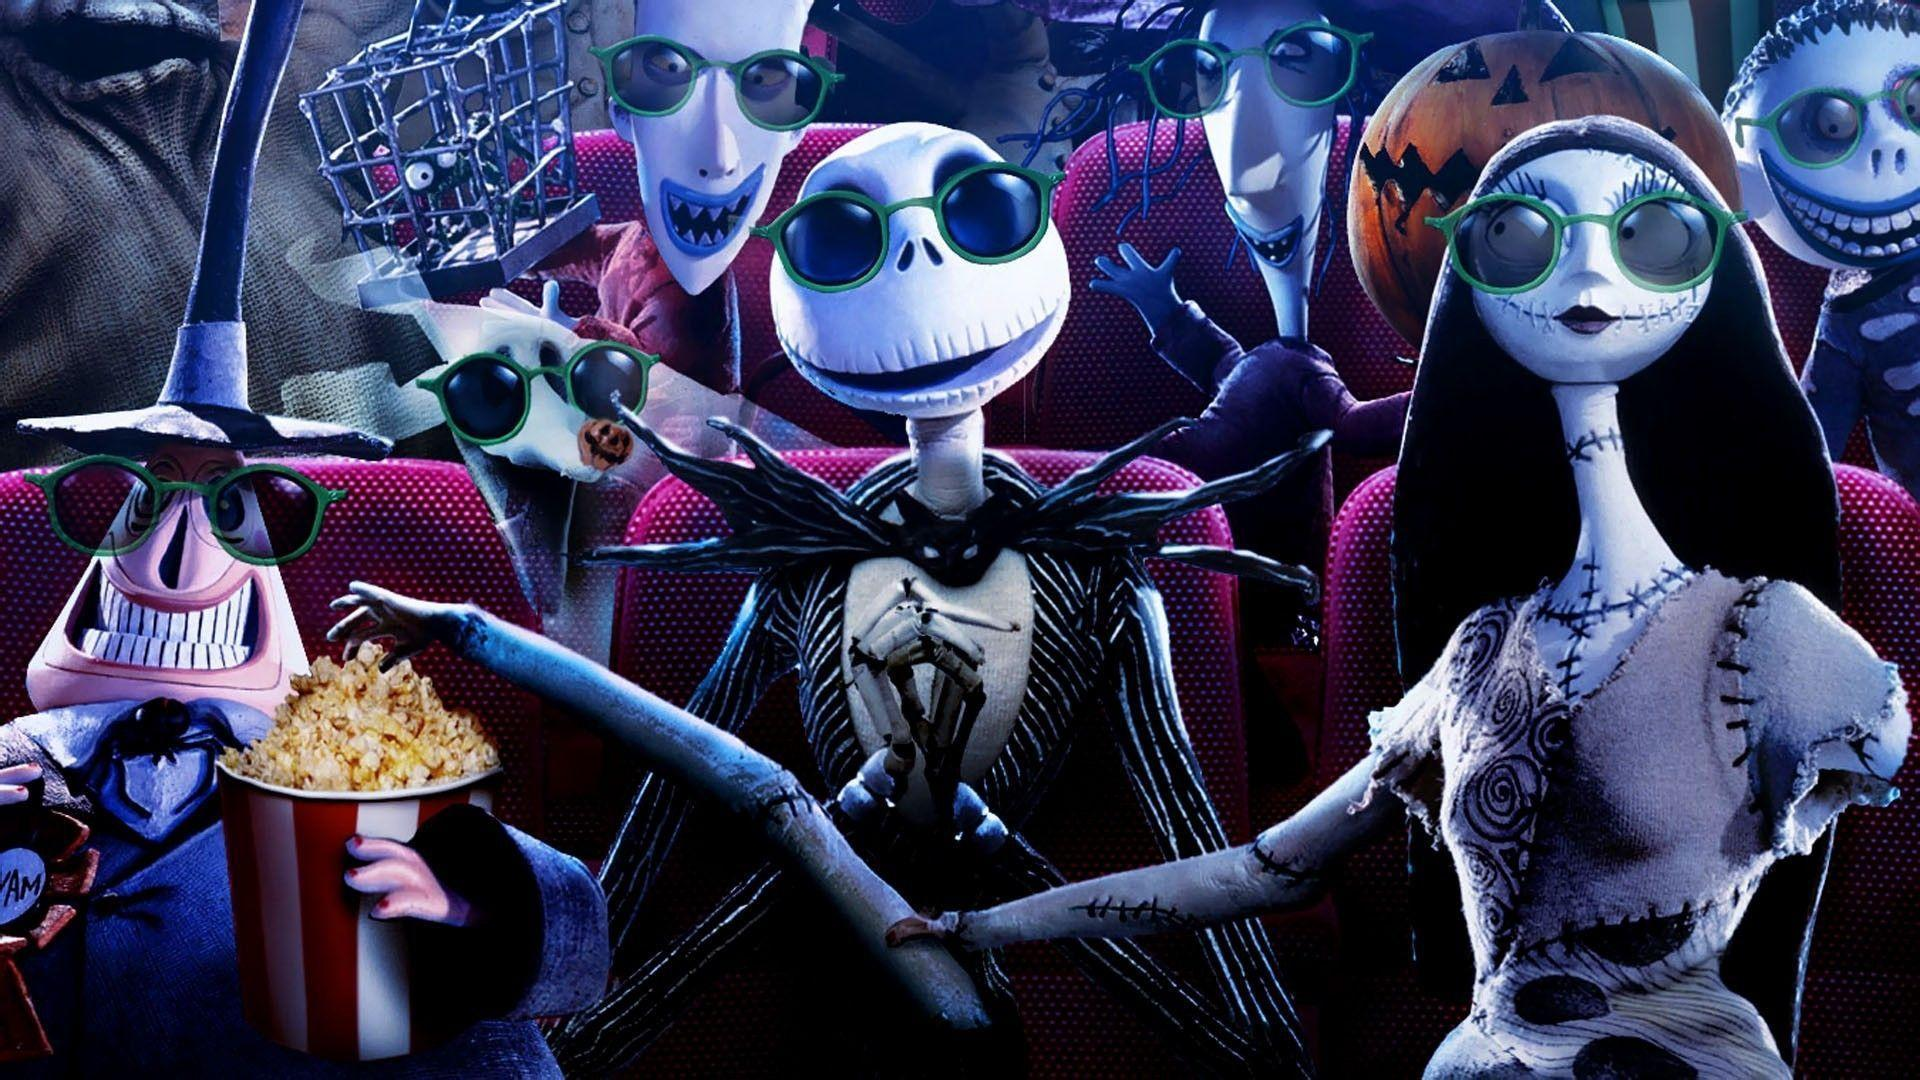 Nightmare Before Christmas Wallpapers 1920x1080 Image & Pictures